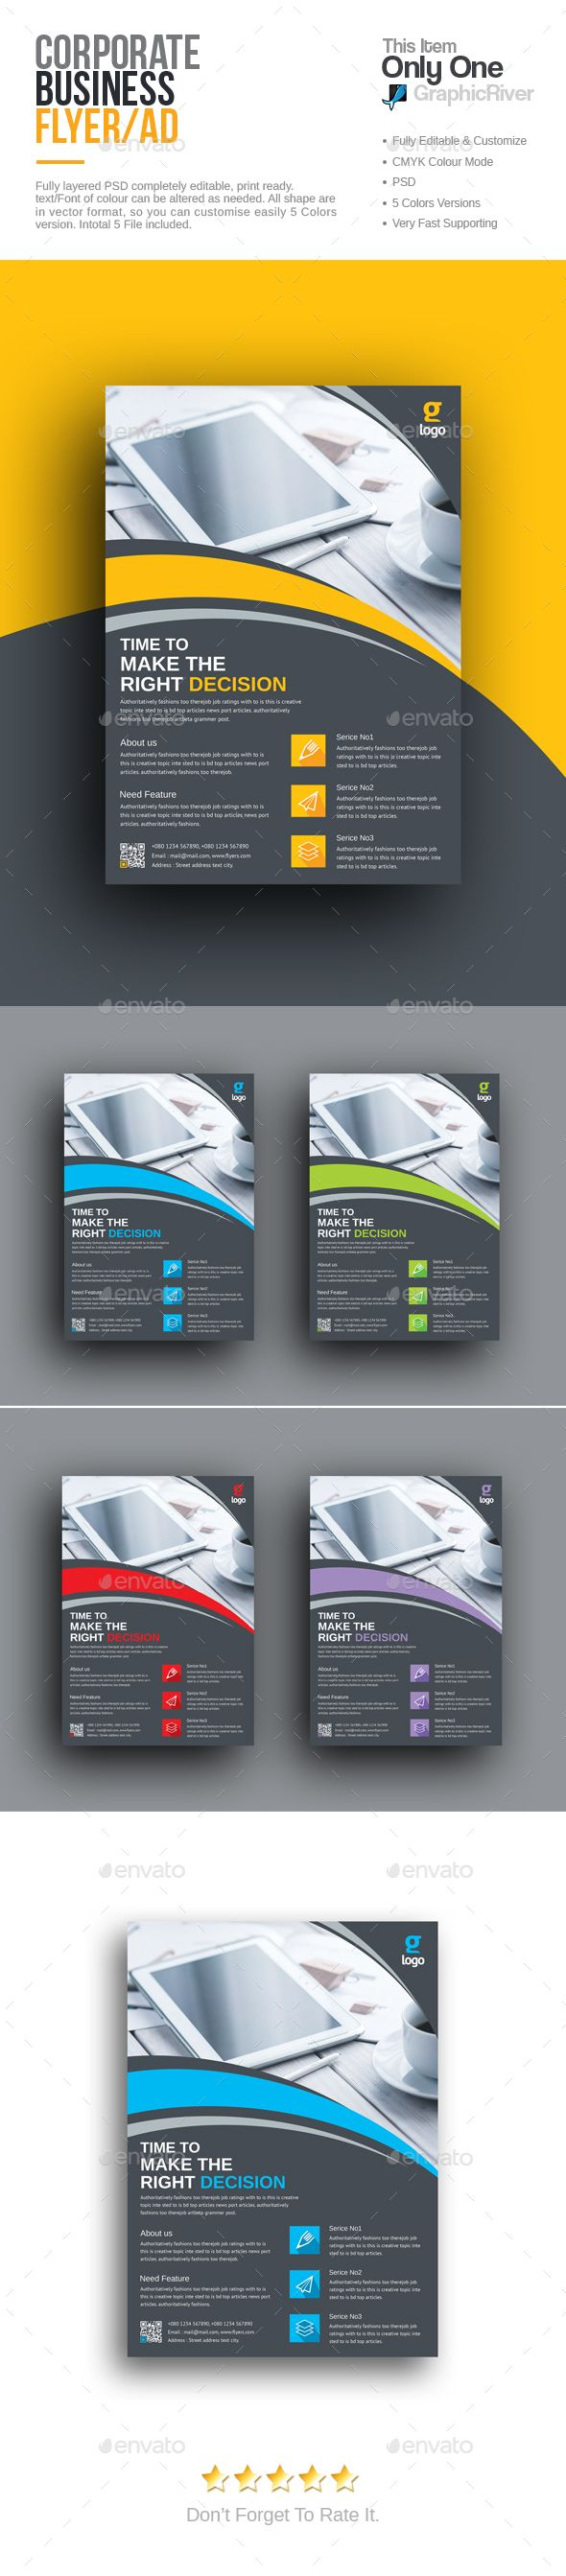 Corporate Flyer Template PSD. Download here: http://graphicriver.net/item/corporate-flyer/16142304?ref=ksioks